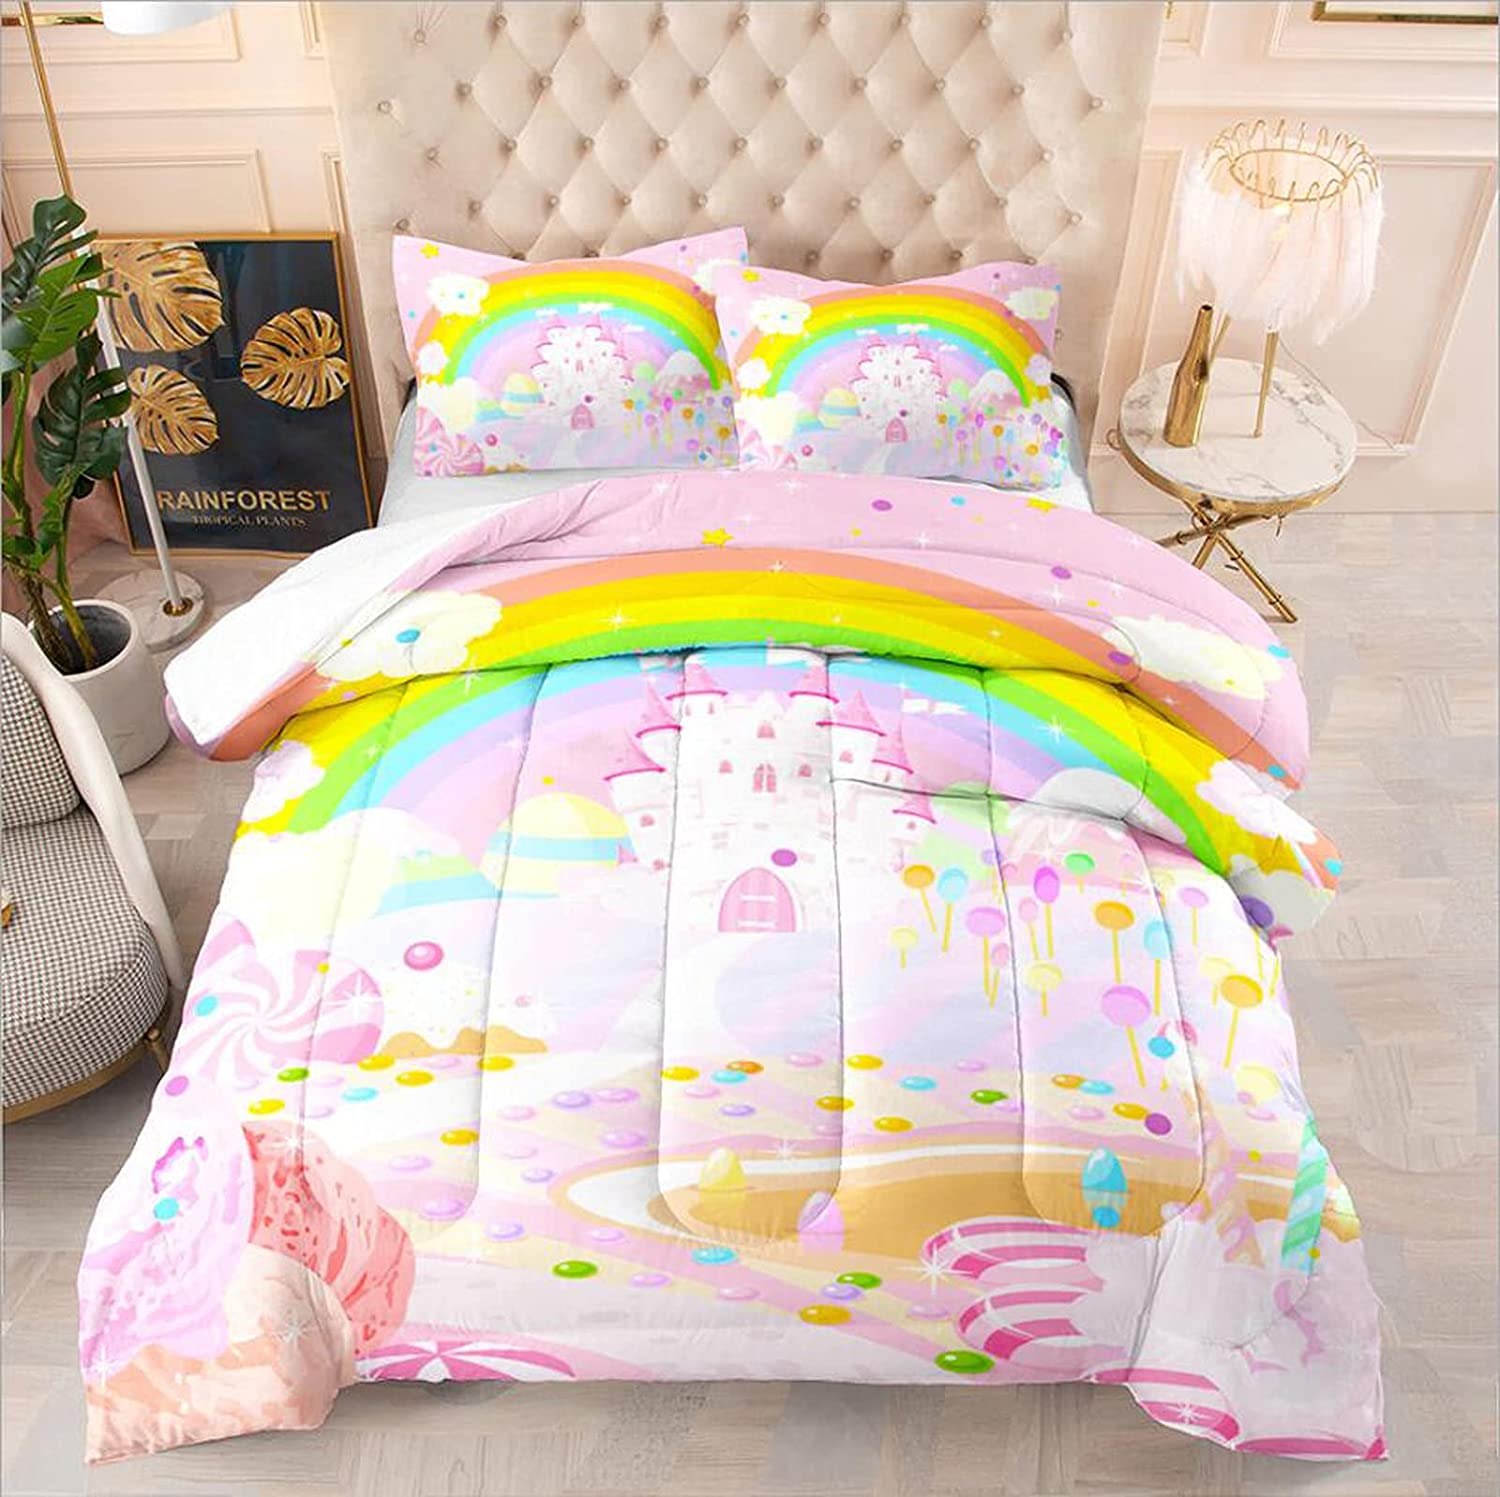 Pink Comforter Sets for Girls Twin Kids Bedding Special sale item Direct stock discount Size Set Rainbow